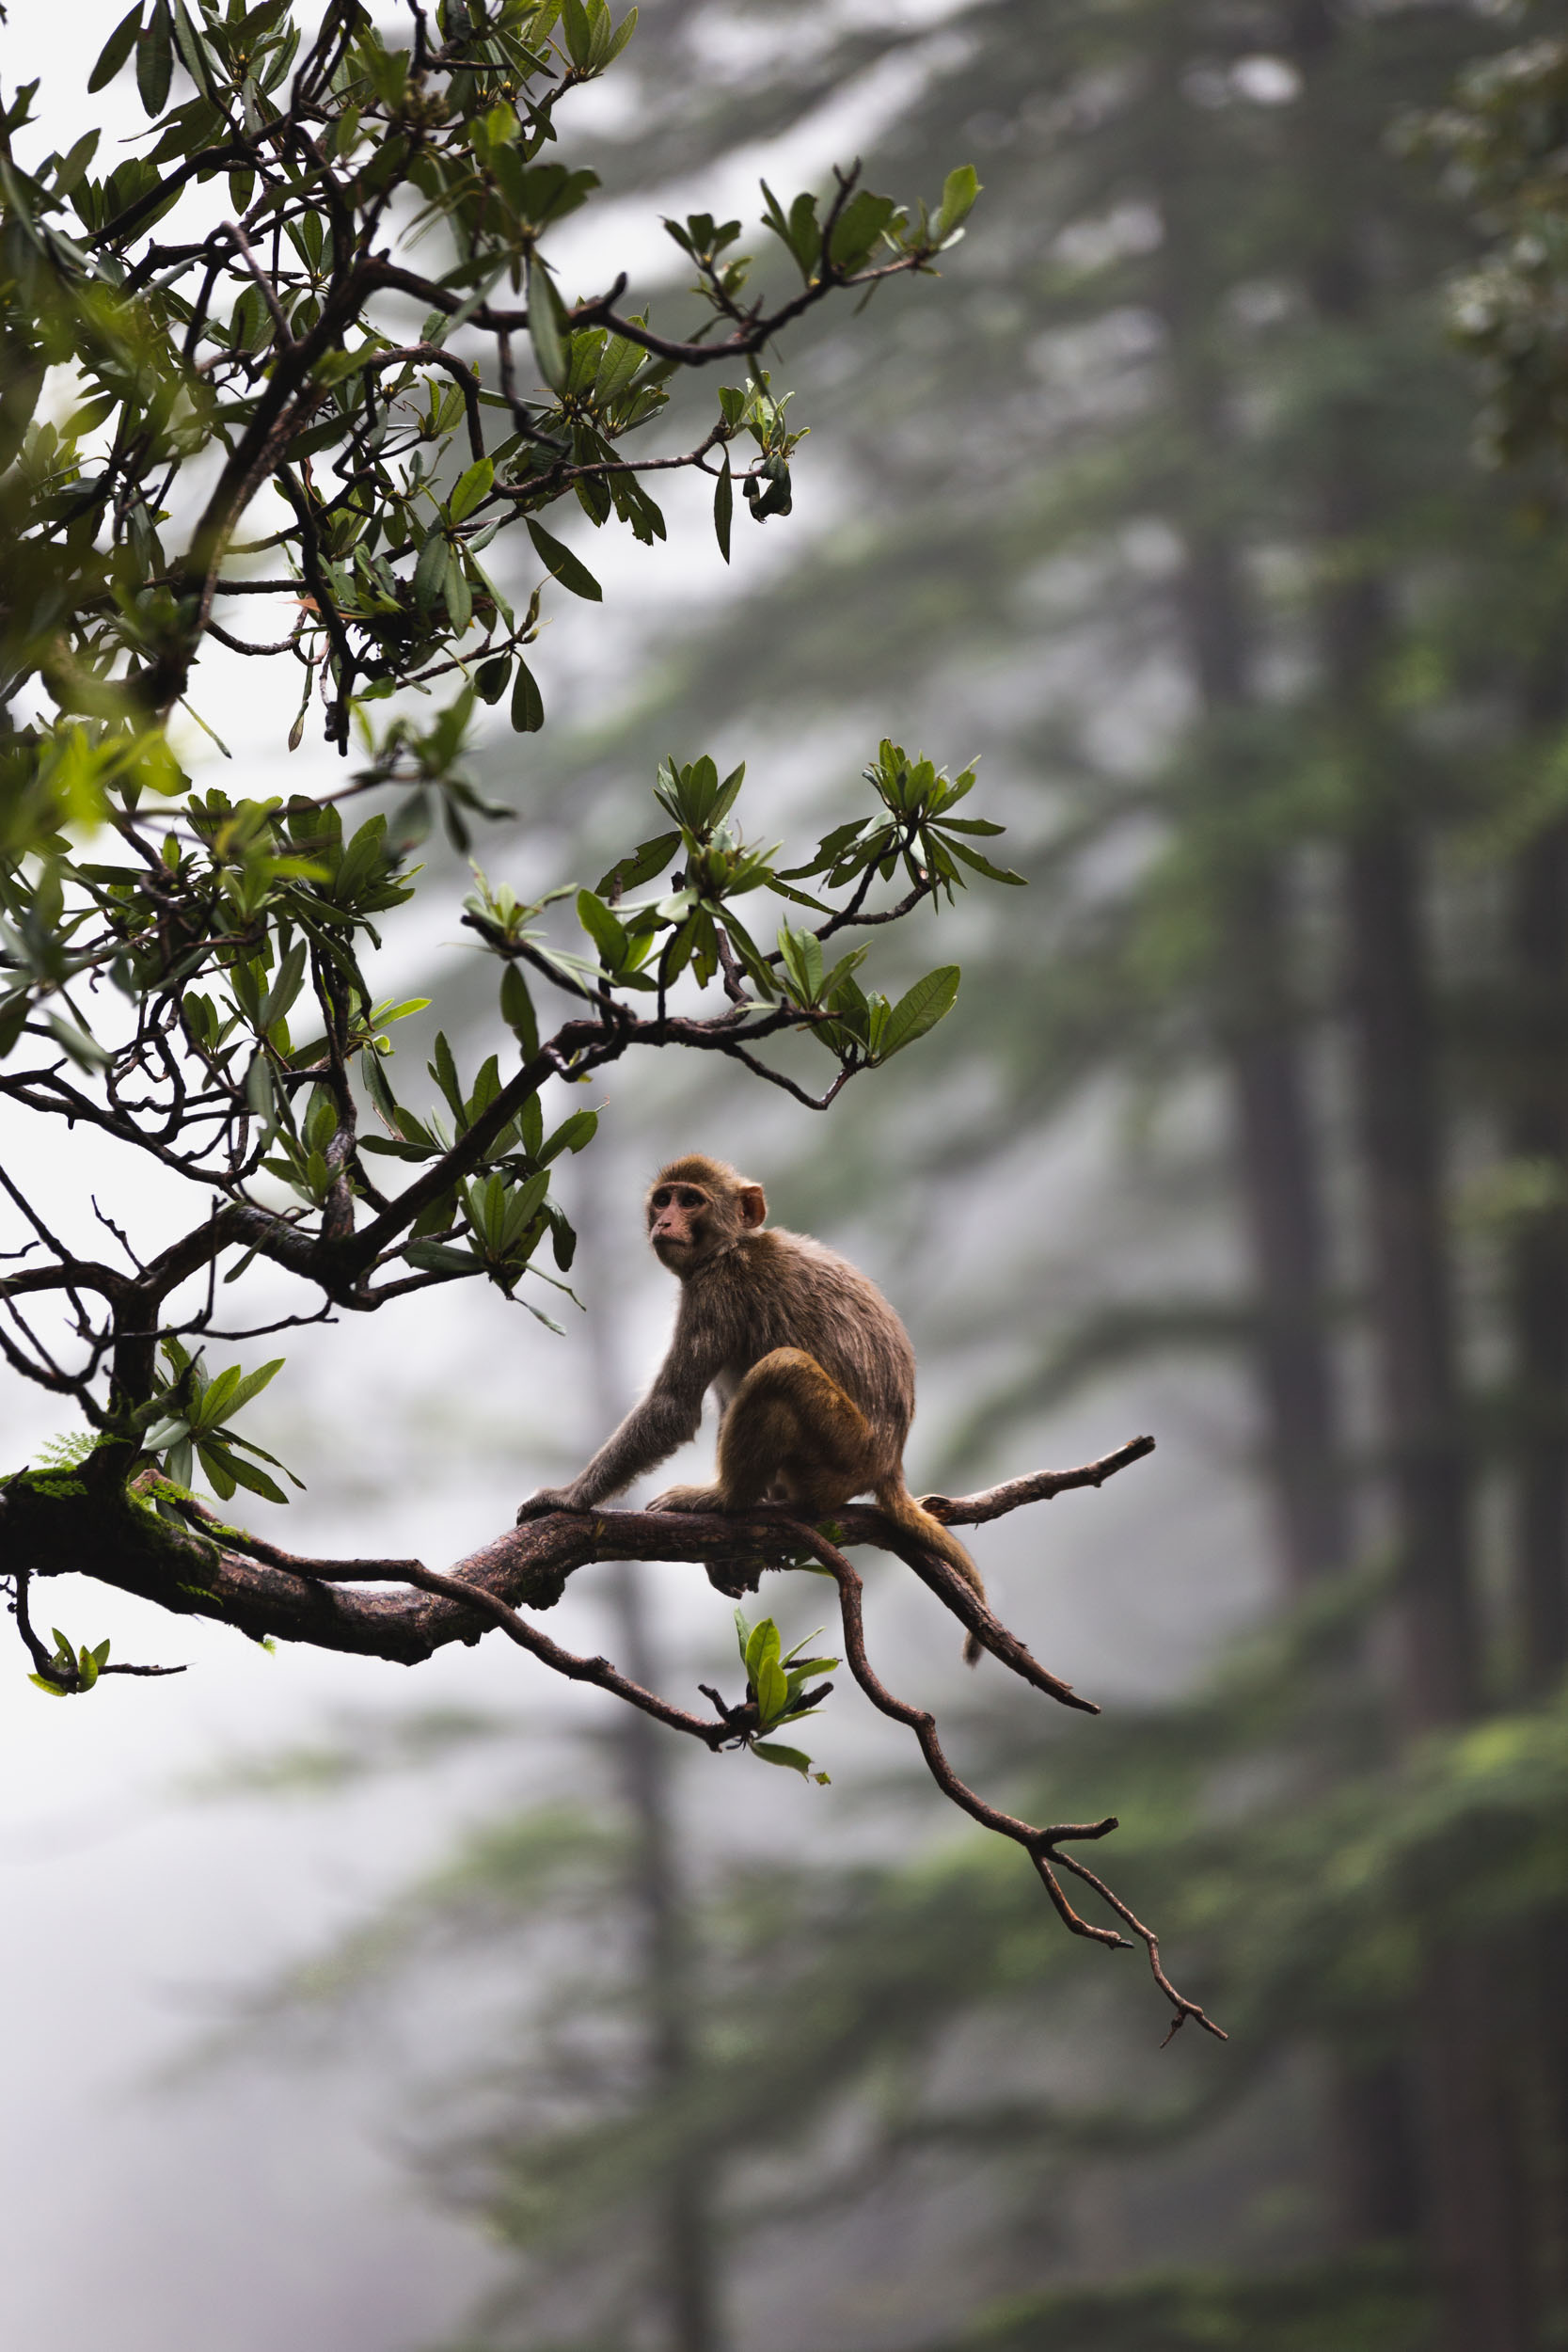 Misty Forrest Monkey in Naddi, India.